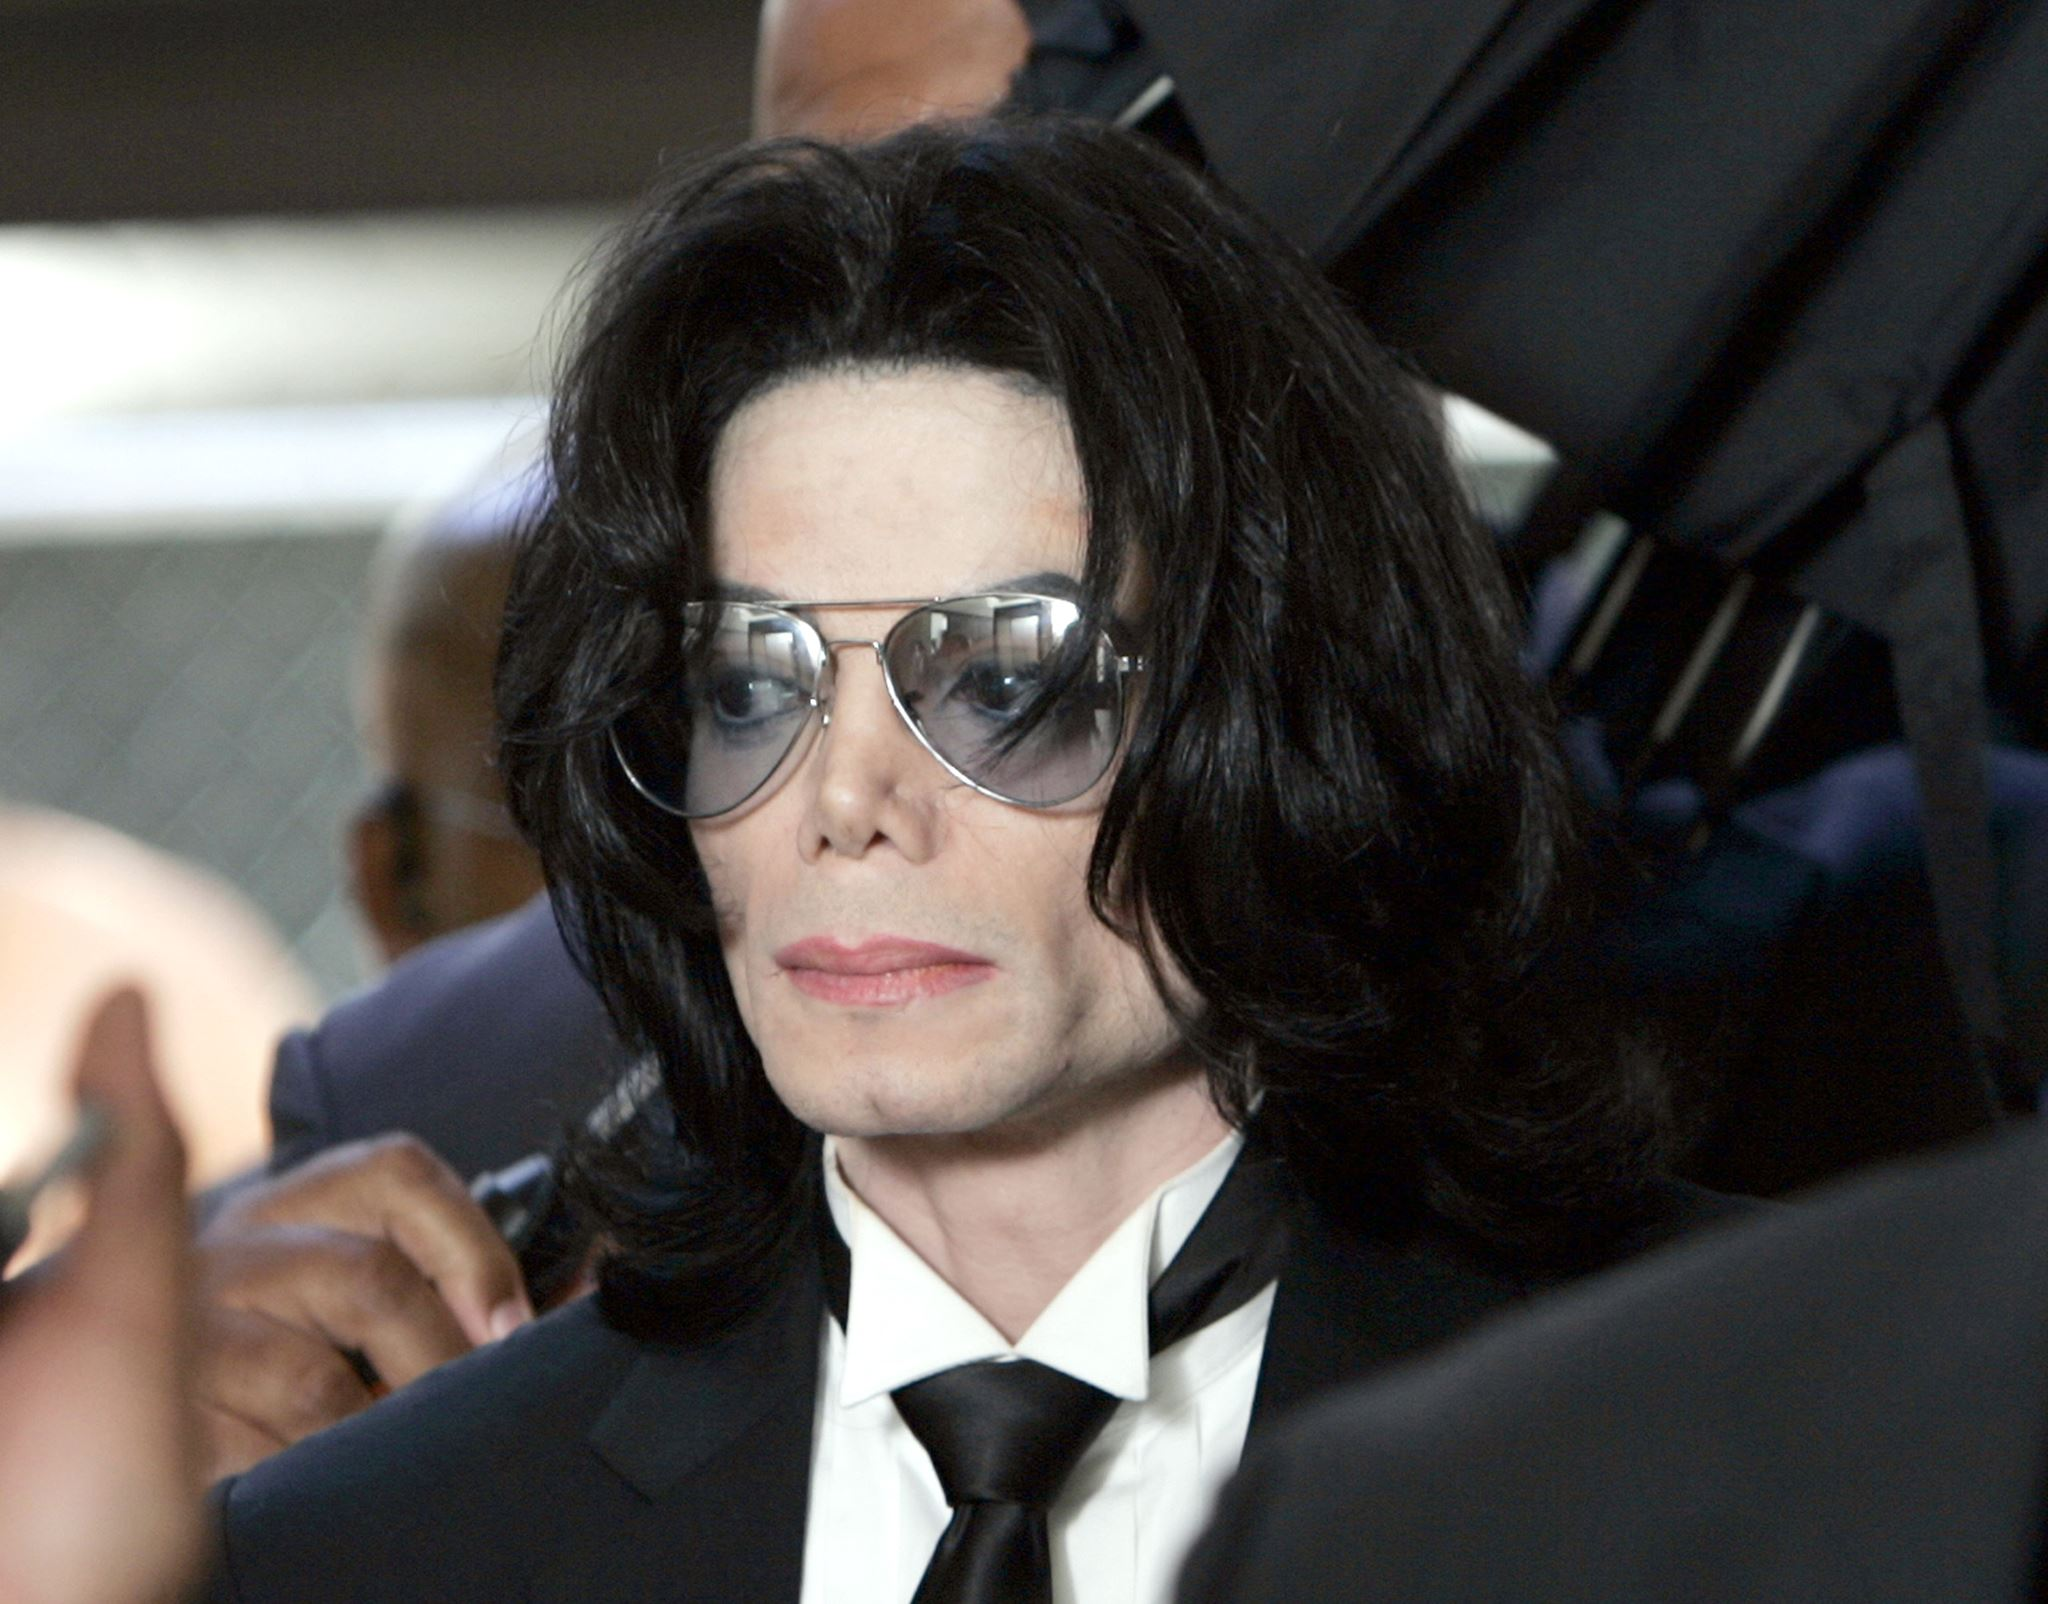 13699459 10154946100408492 1141285956 o Michael Jacksons Darkest Secrets Revealed By His Doctor